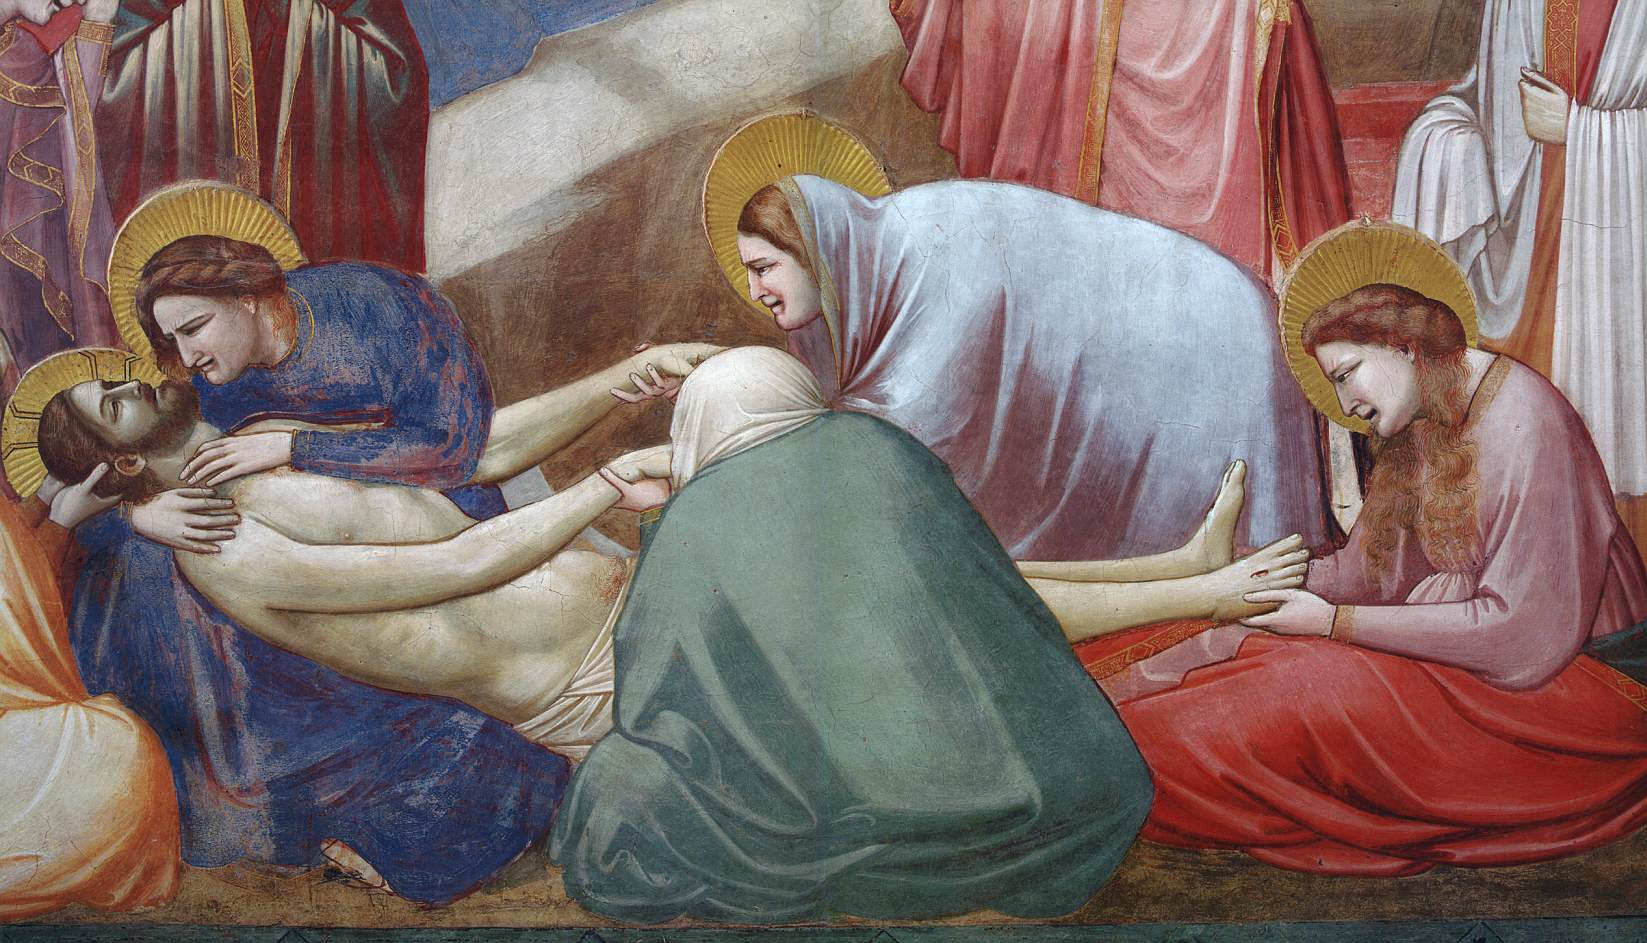 The Scrovegni Chapel: My Moment with Giotto's Masterpiece ...